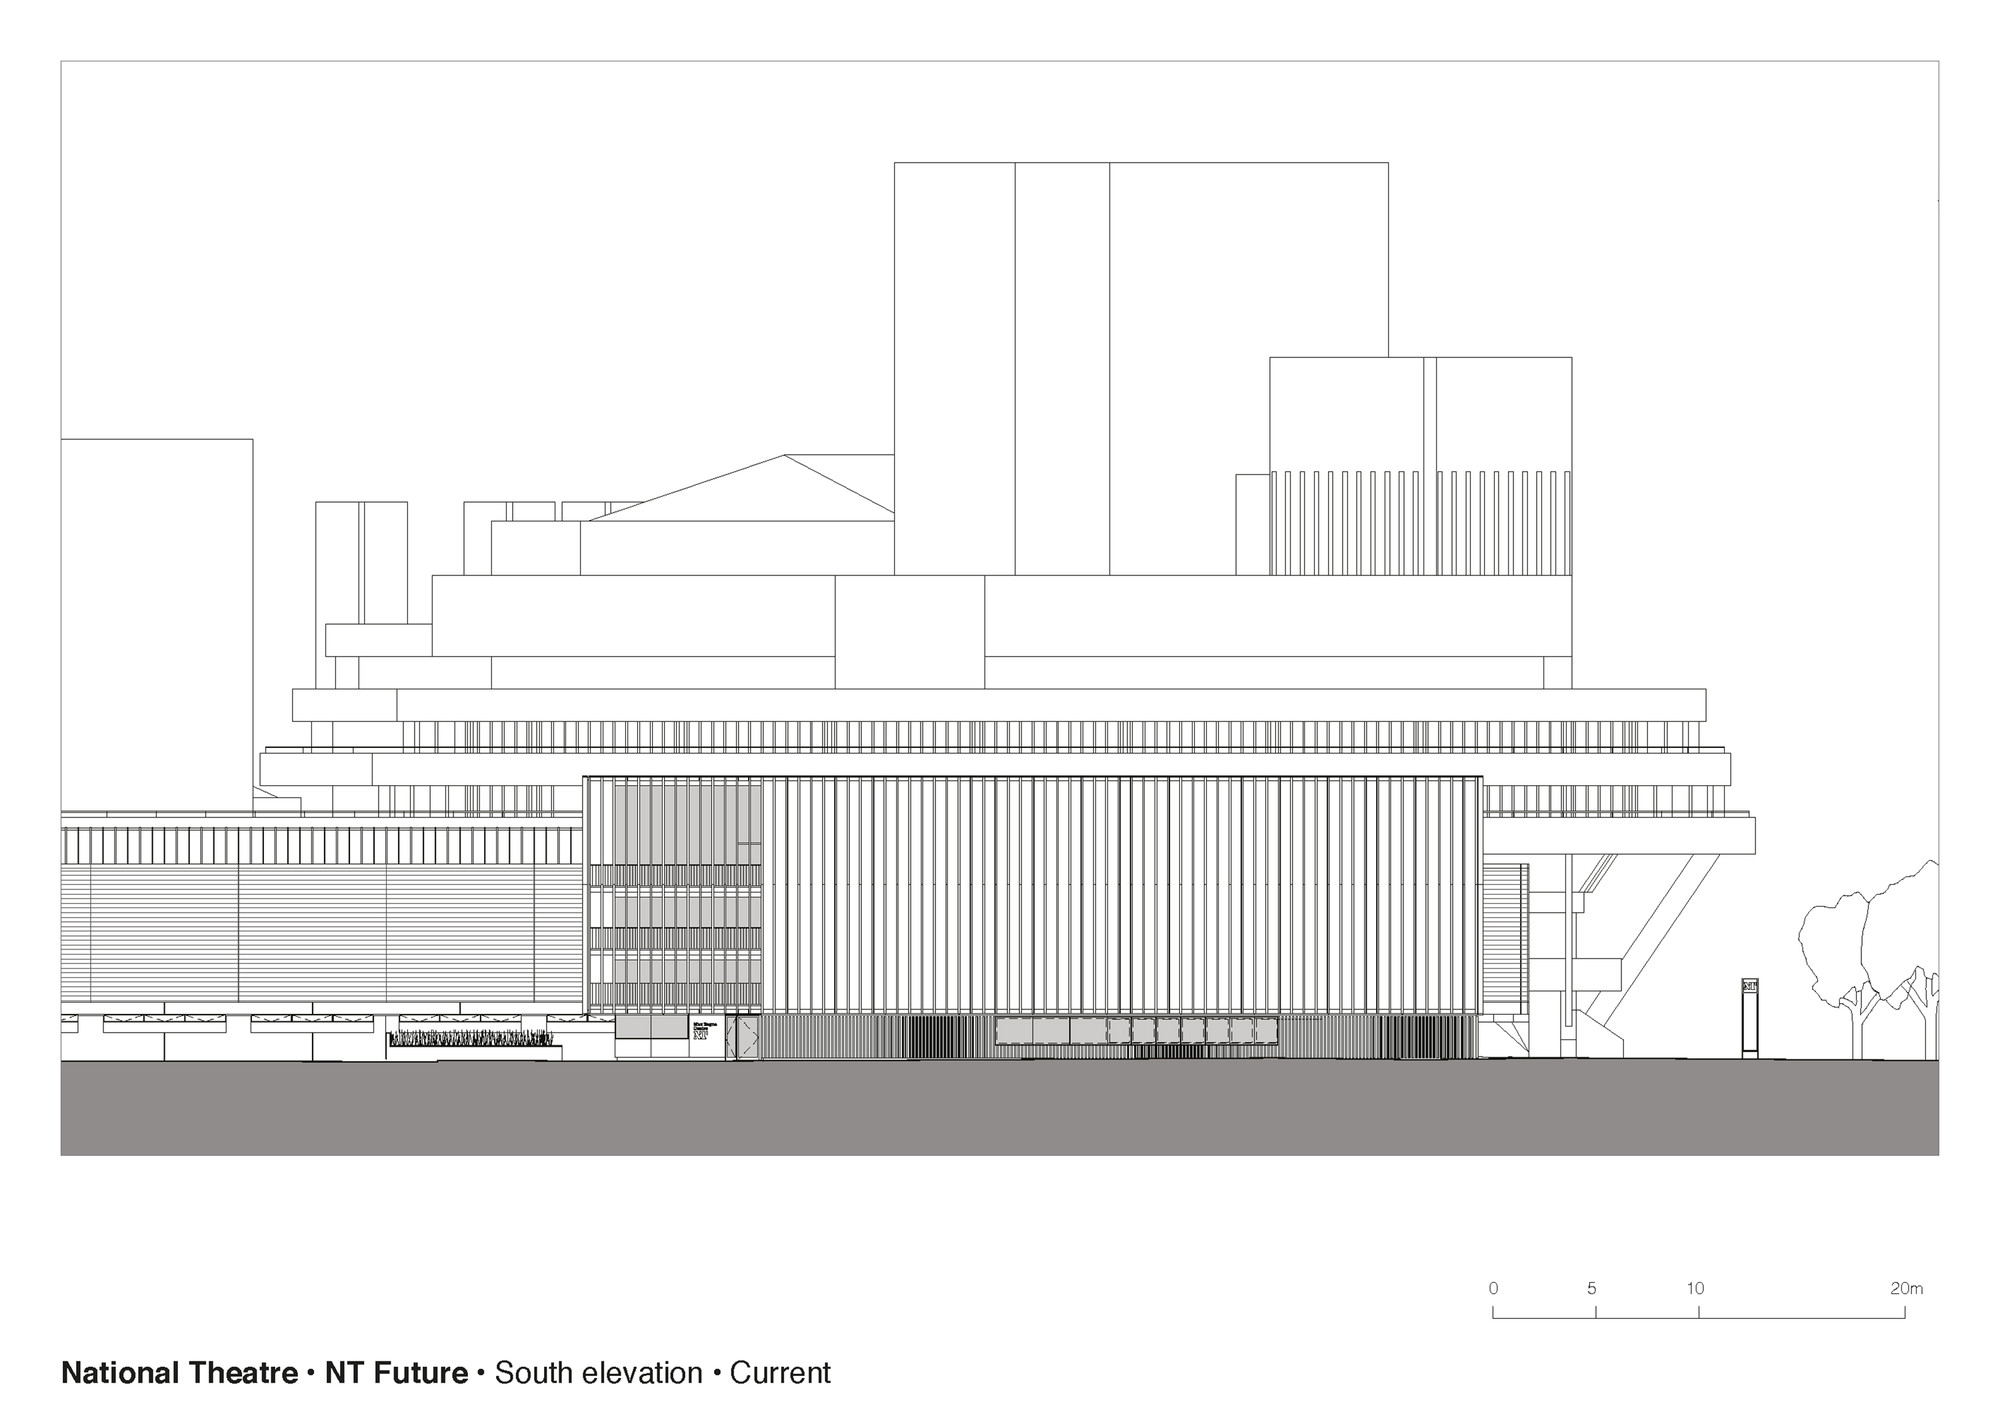 Gallery Of National Theatre Haworth Tompkins - Current elevation